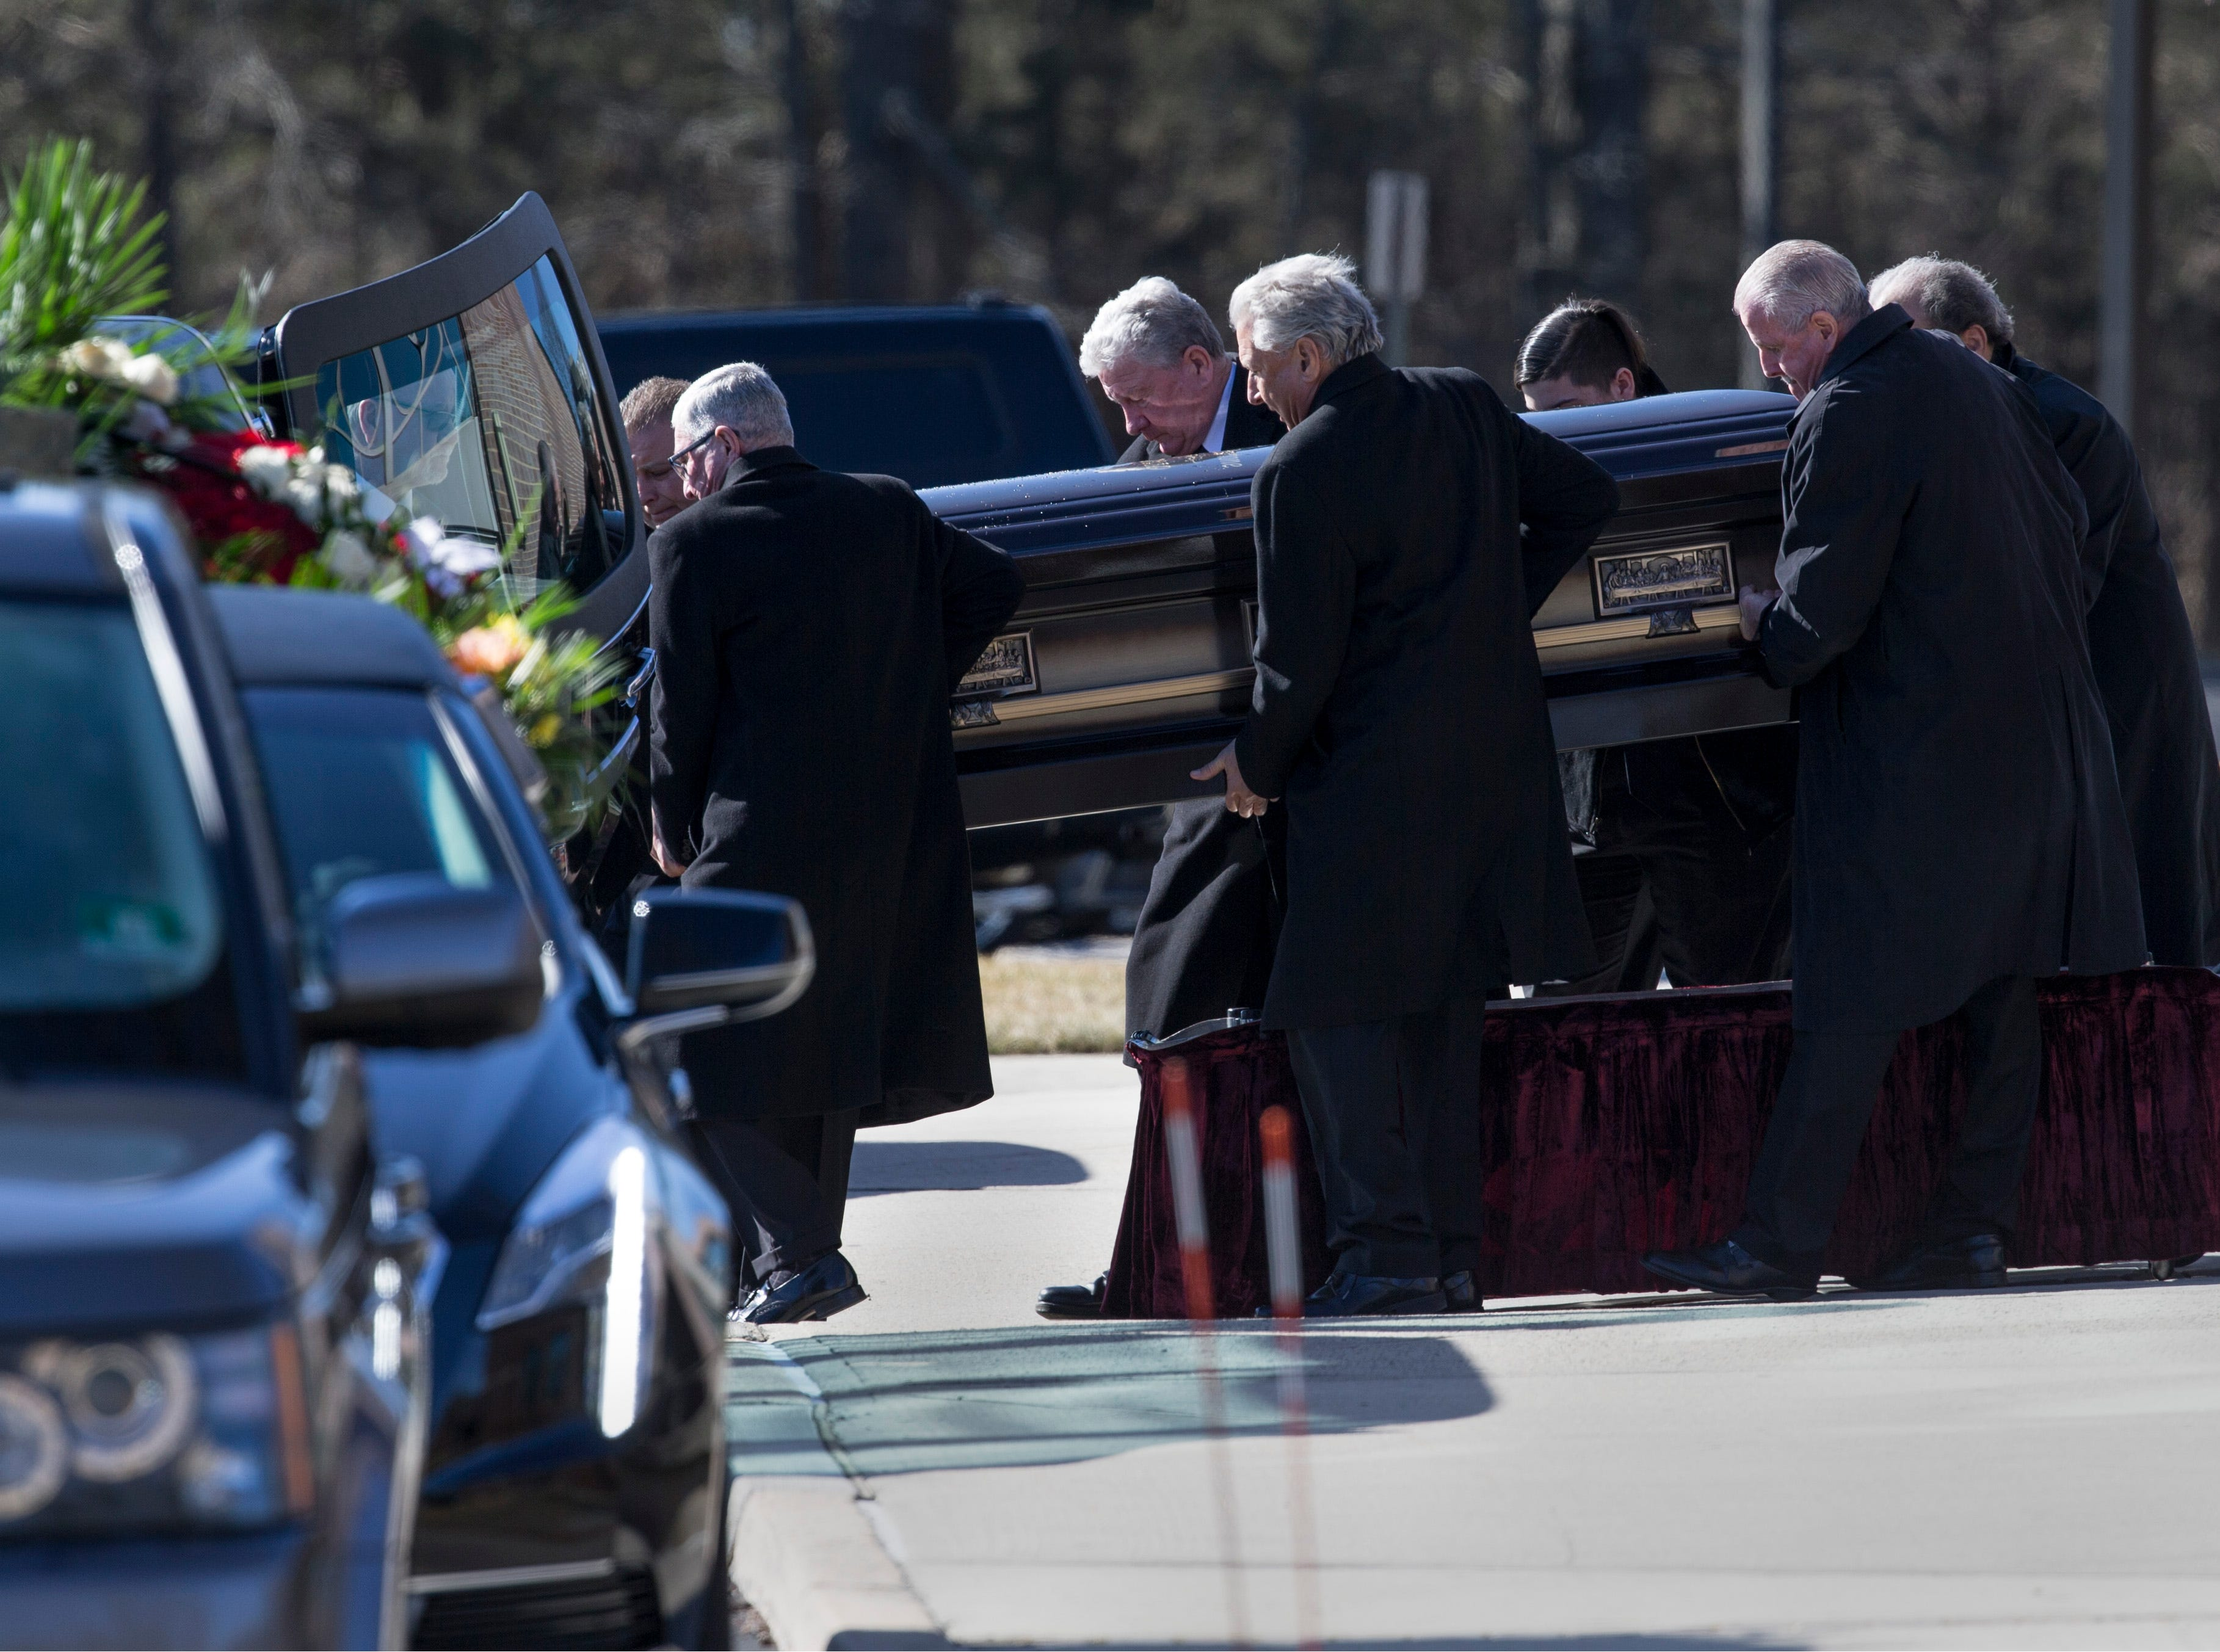 Pallbearers carry the casket of Denise Bartone outside the Co-Cathedral of St. Robert Bellarmine after the ceremony to celebrate her life took place.   